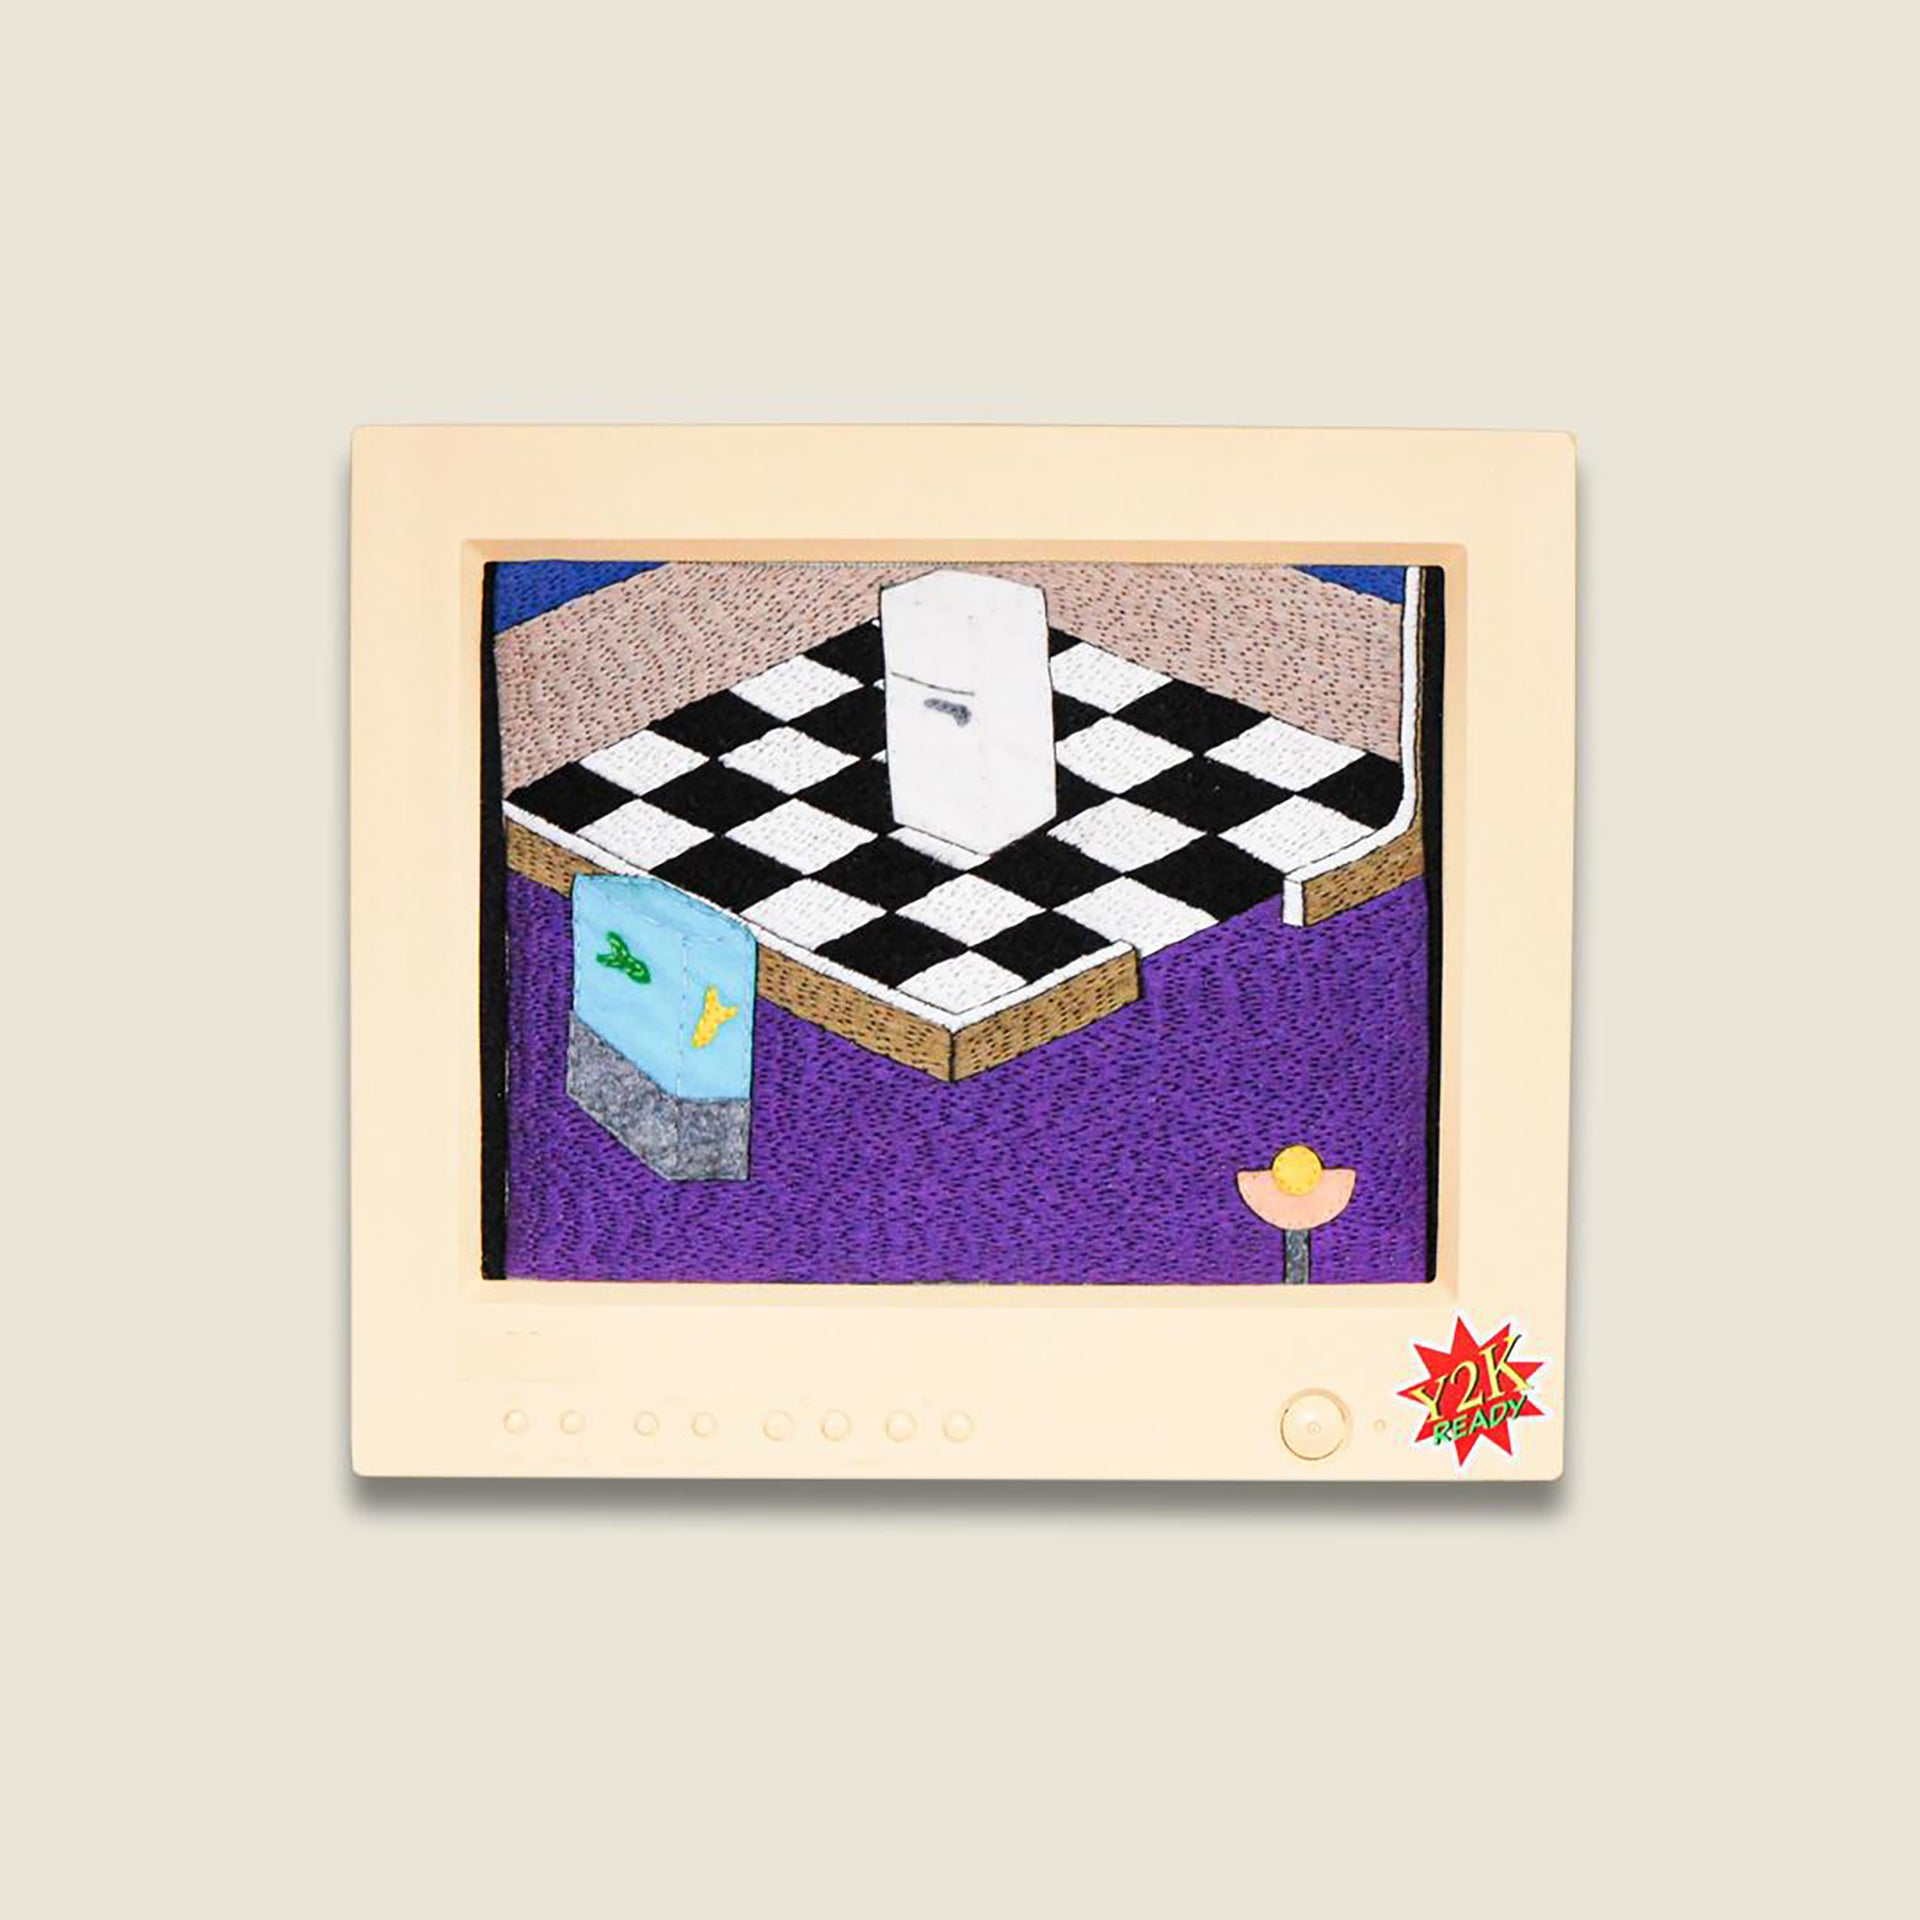 Embroidery artwork of a computer game style layout of a house interior, including tiled kitchen floor, a fridge and fish tank in hallway.